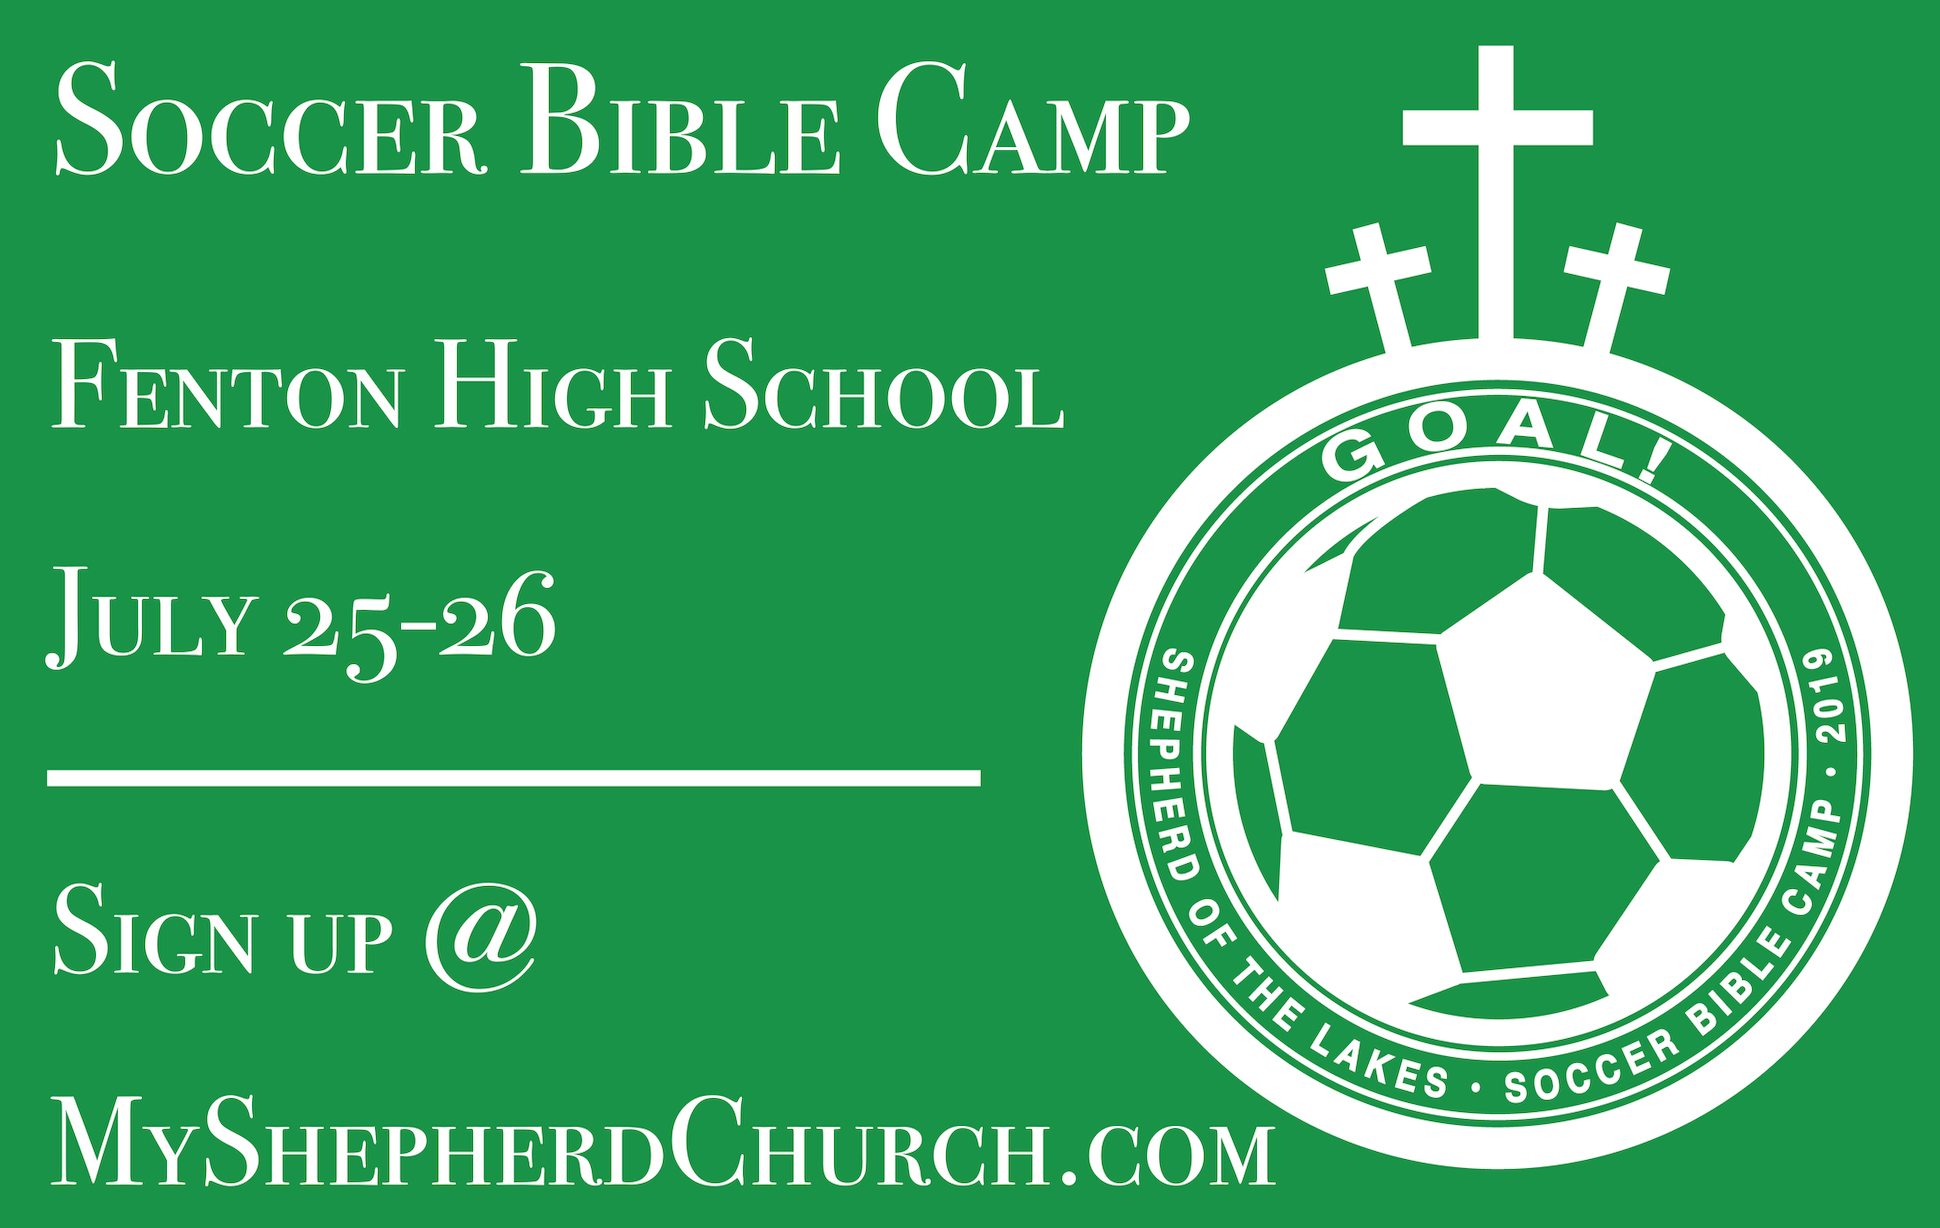 Who: Kids ages 4-10  Where: Fenton High School Varsity Field (corner of Shiawassee & Donaldson)  When: Thursday-Friday, July 25-26th, 9:30-11:30am (arrive/sign-in from 9:10-9:30)  Cost: Free! And each camper will receive a camp t-shirt.  Details: This camp is ideal for exposing young children to soccer or for honing skills of kids who have already played some organized soccer. And soccer and competition are both wonderful, but each day we'll also share something even greater: that Jesus has won the goal of heaven for us. Not helped us attain it, but given the victory to us as a gift through trust in him.  Snacks and drinks will be provided both days, and campers and family/friends are invited to a picnic lunch on Friday at 11:30am!  Each camper should bring a ball (size 4 or 5) and soccer shin guards, but it's okay if they don't have them. Soccer shoes are optional.  Register above, and we'll see you on July 25th!